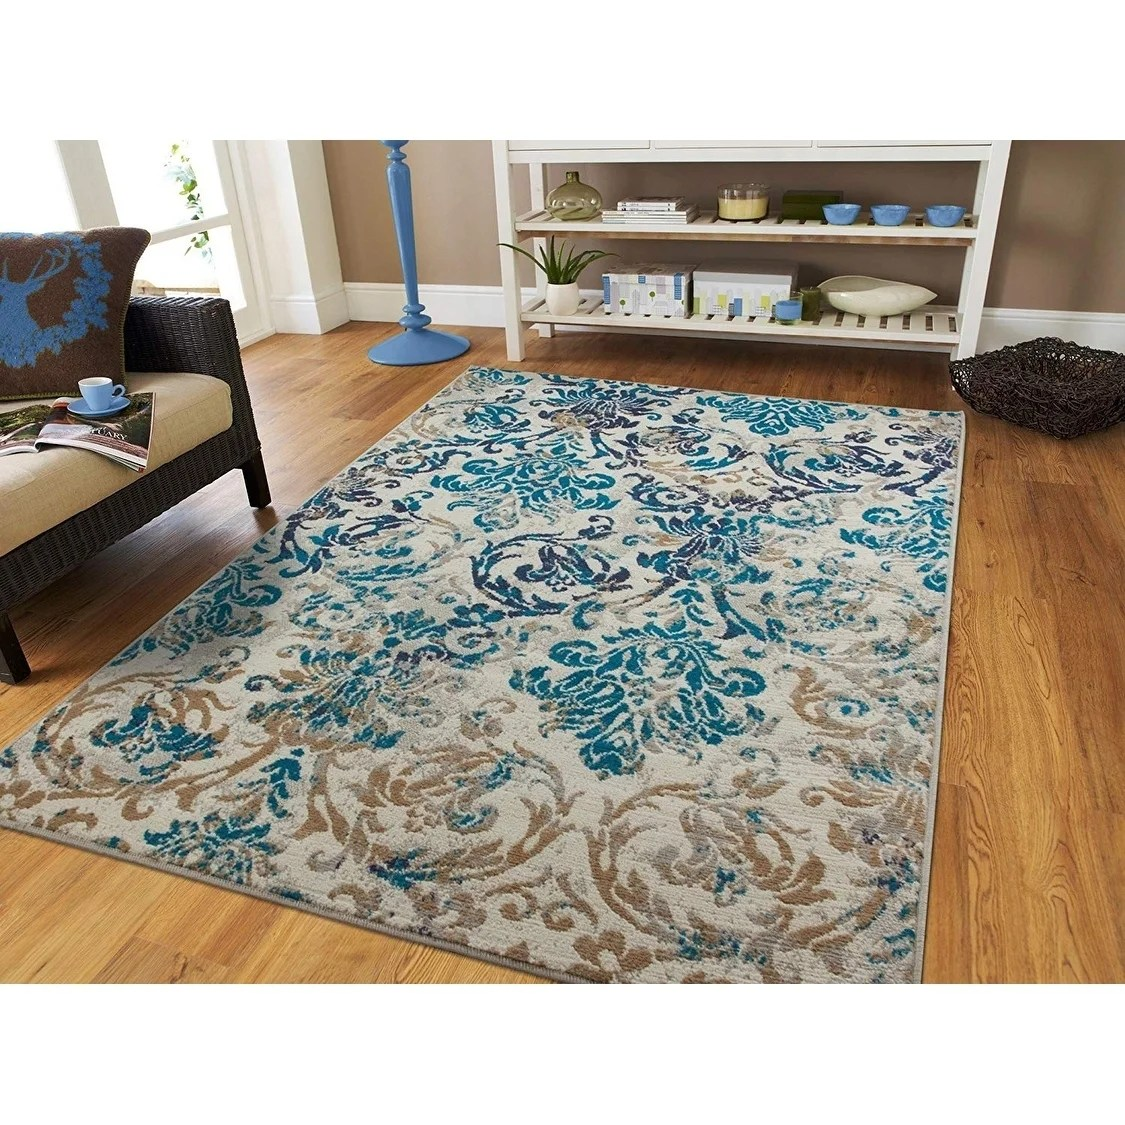 Teal Color Area Rugs Modern Area Rugs Teal Blue Gray